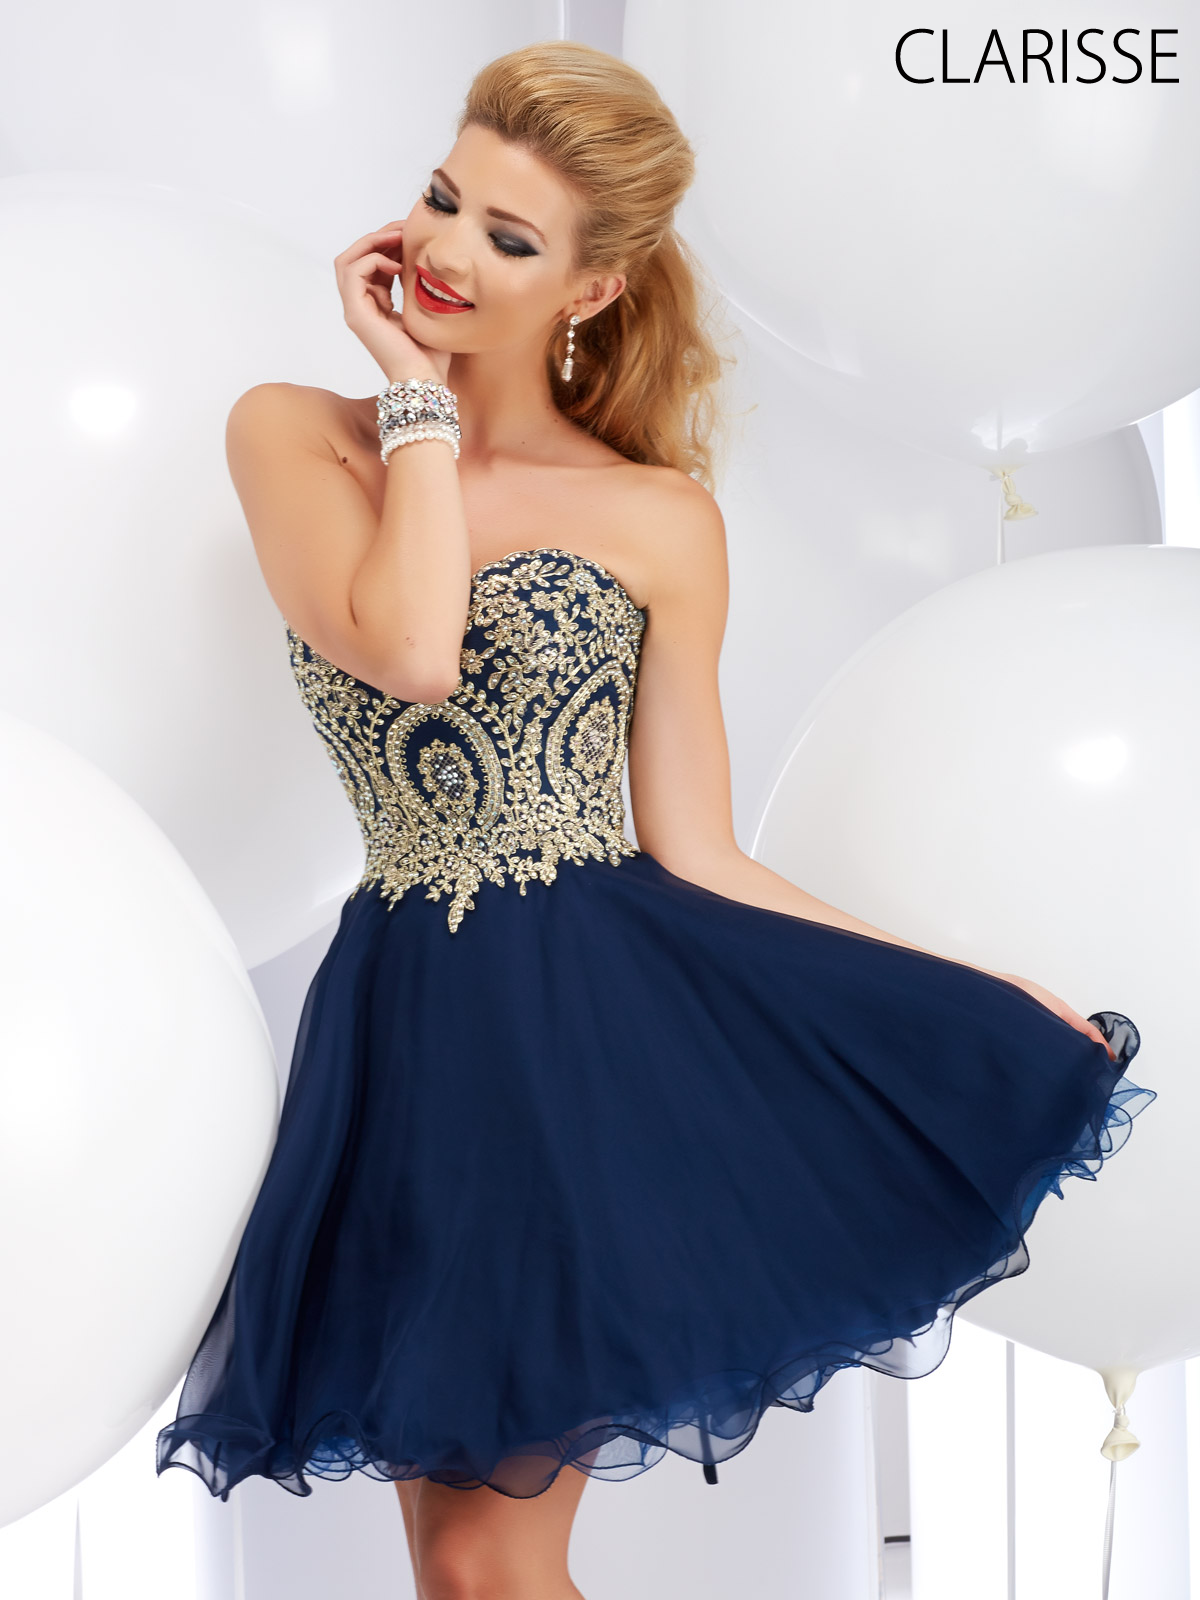 Short Strapless Prom Dress with Lace Applique by Clarisse. Style ...